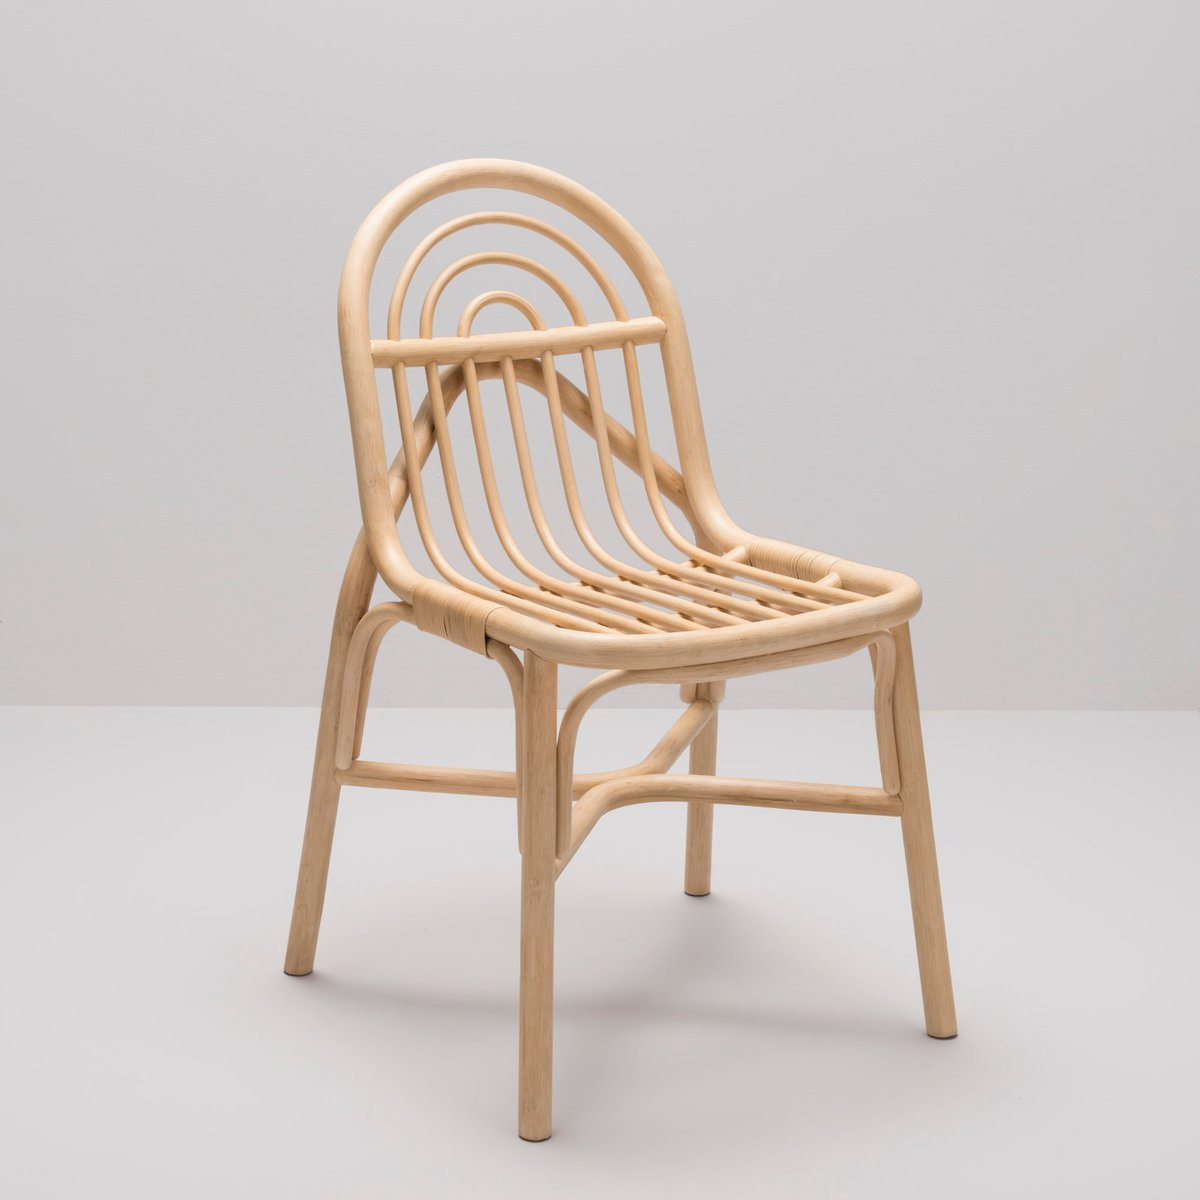 Sillon Rattan Chair By Guillaume Delvigne For Orchid Edition For Sale At Pamono